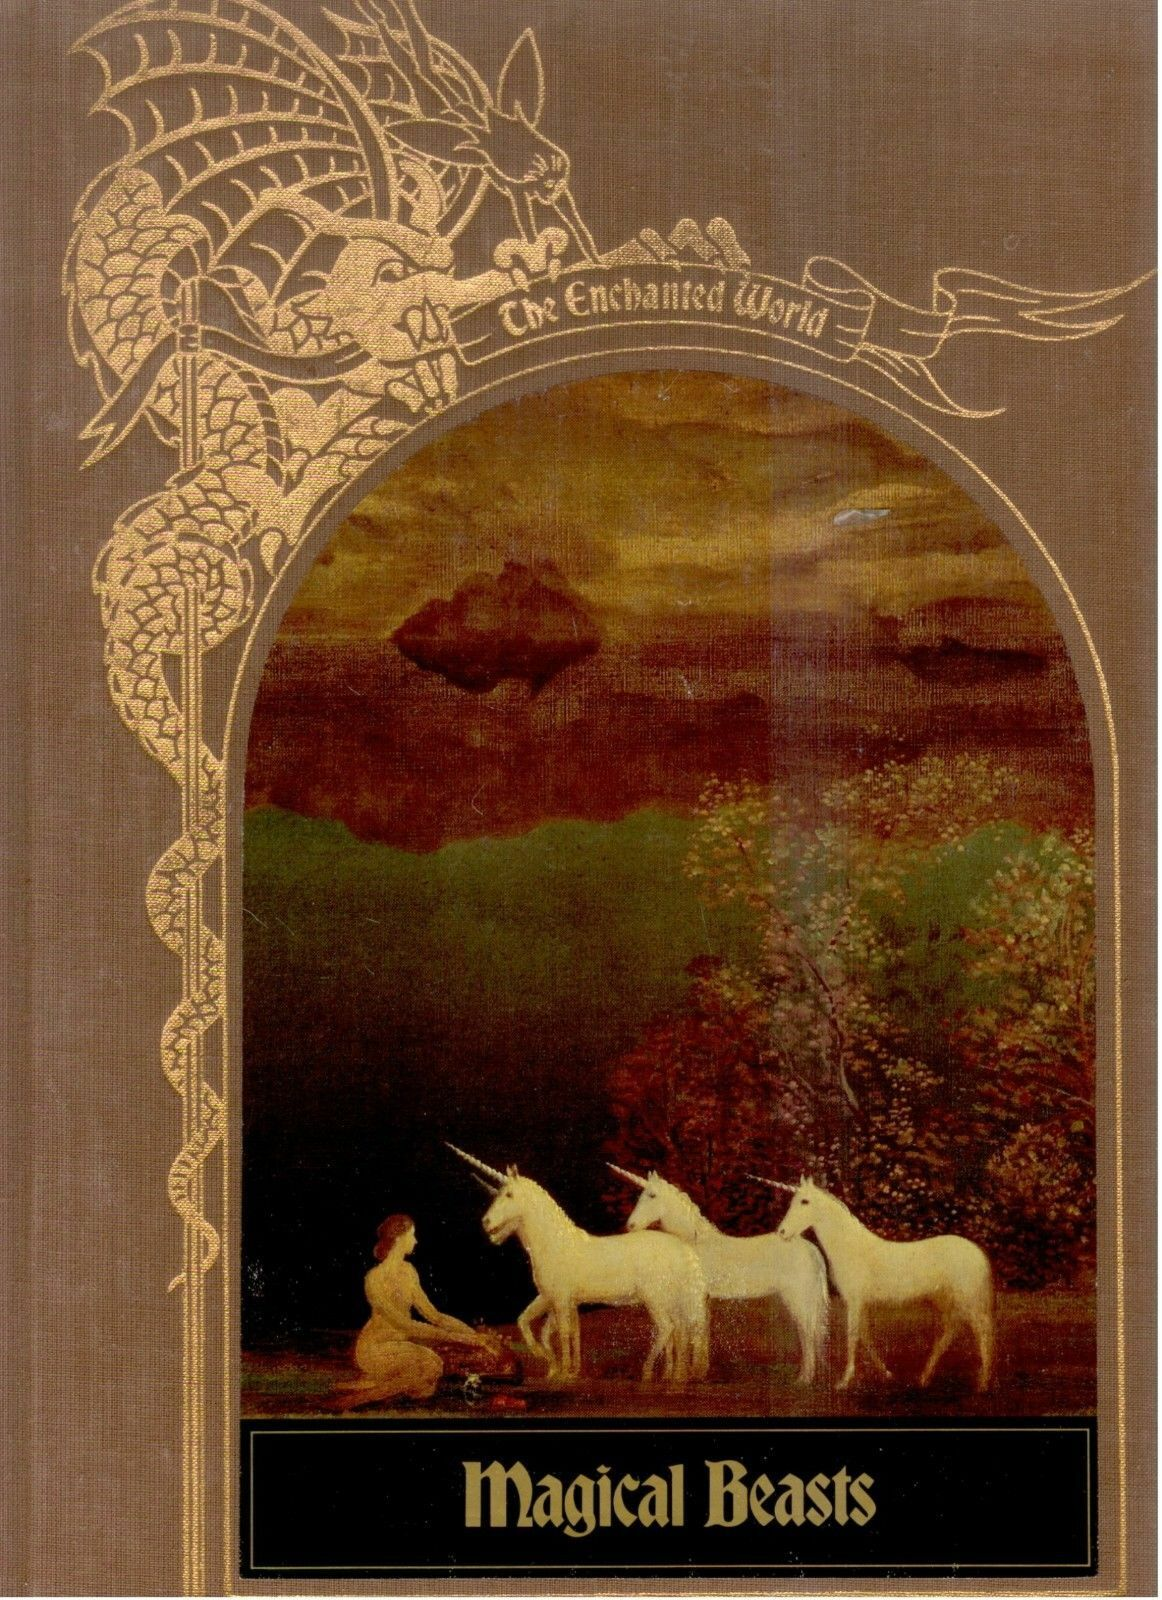 The Enchanted World: Magical Beasts (1985, Hardcover) | eBay